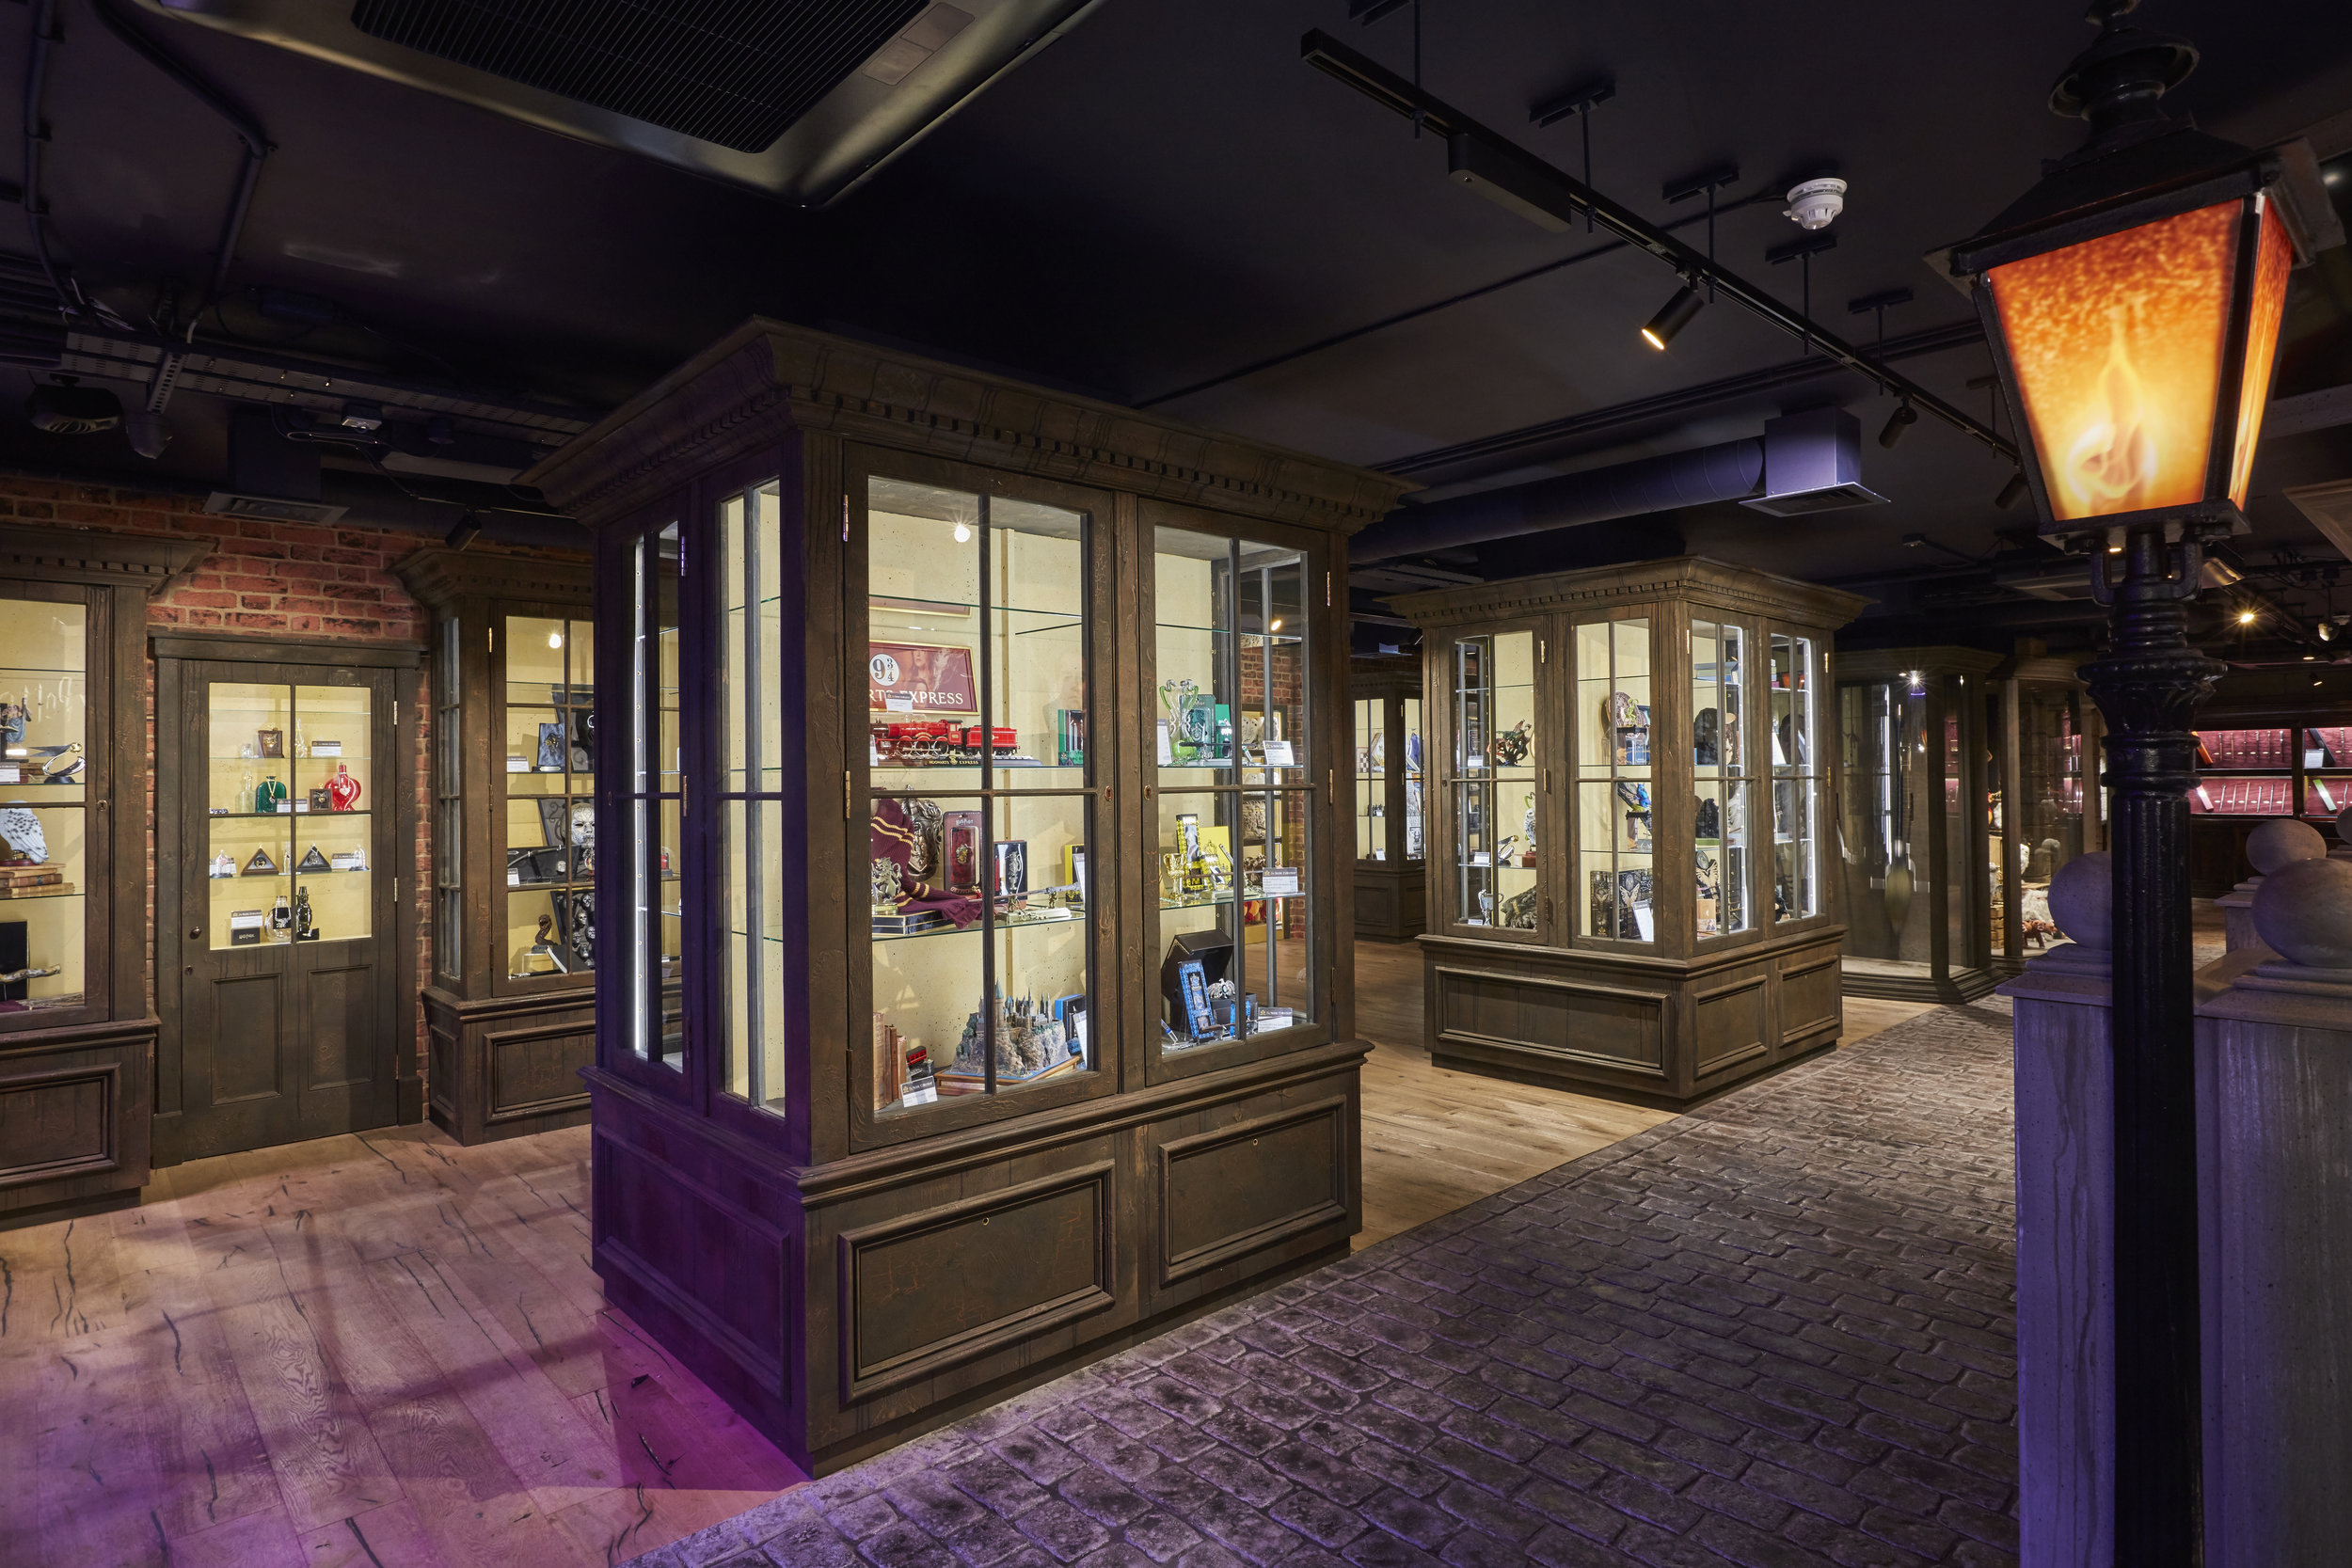 Propability,  Noble Collection, Victorian lamp, street scene, immersive retail, dispaly cases, brick work, woo.jpg